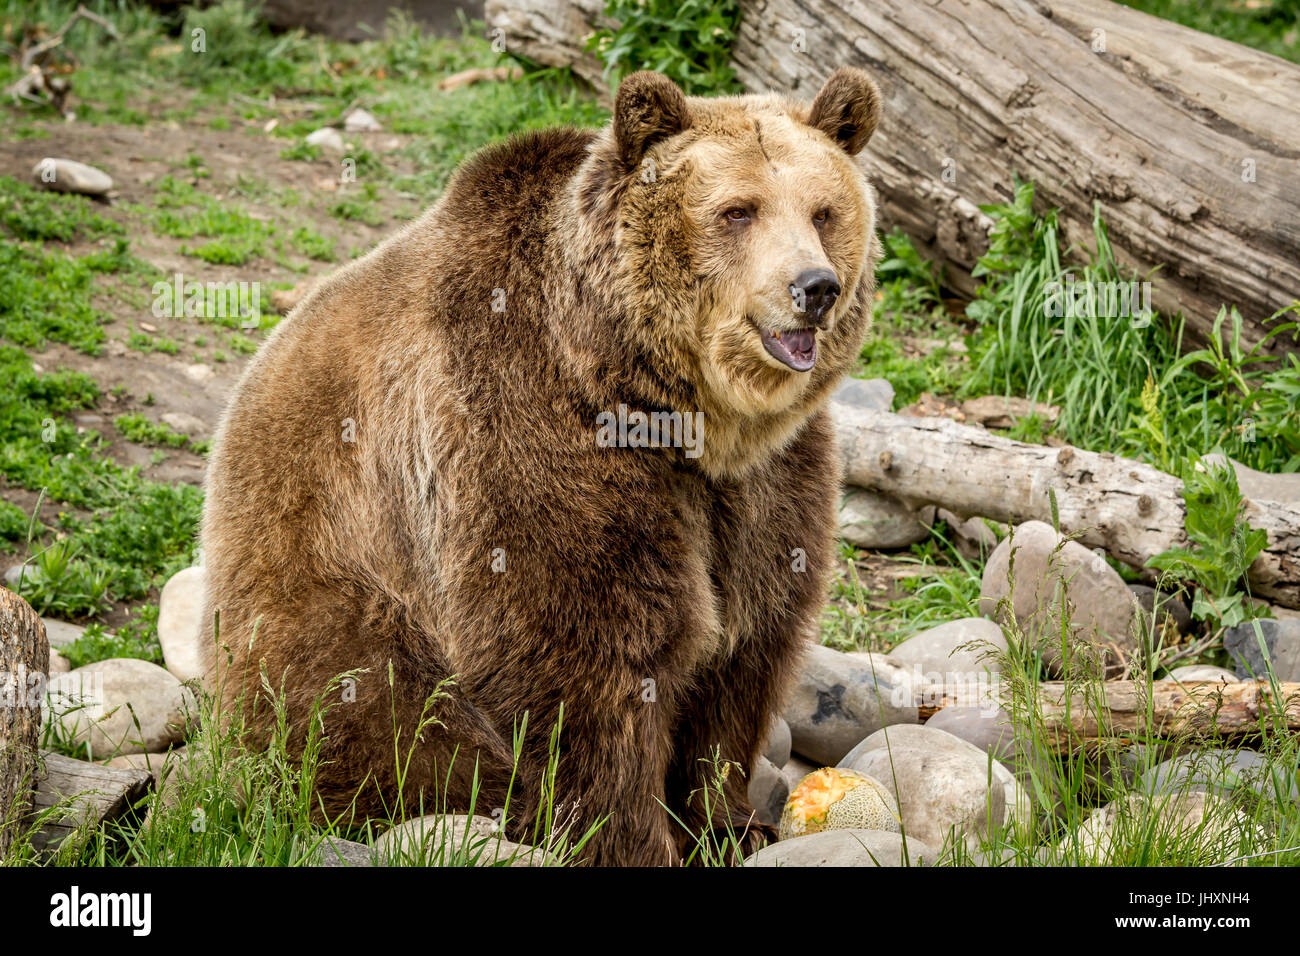 A captive grizzly bear in Montana is sitting by rocks. - Stock Image